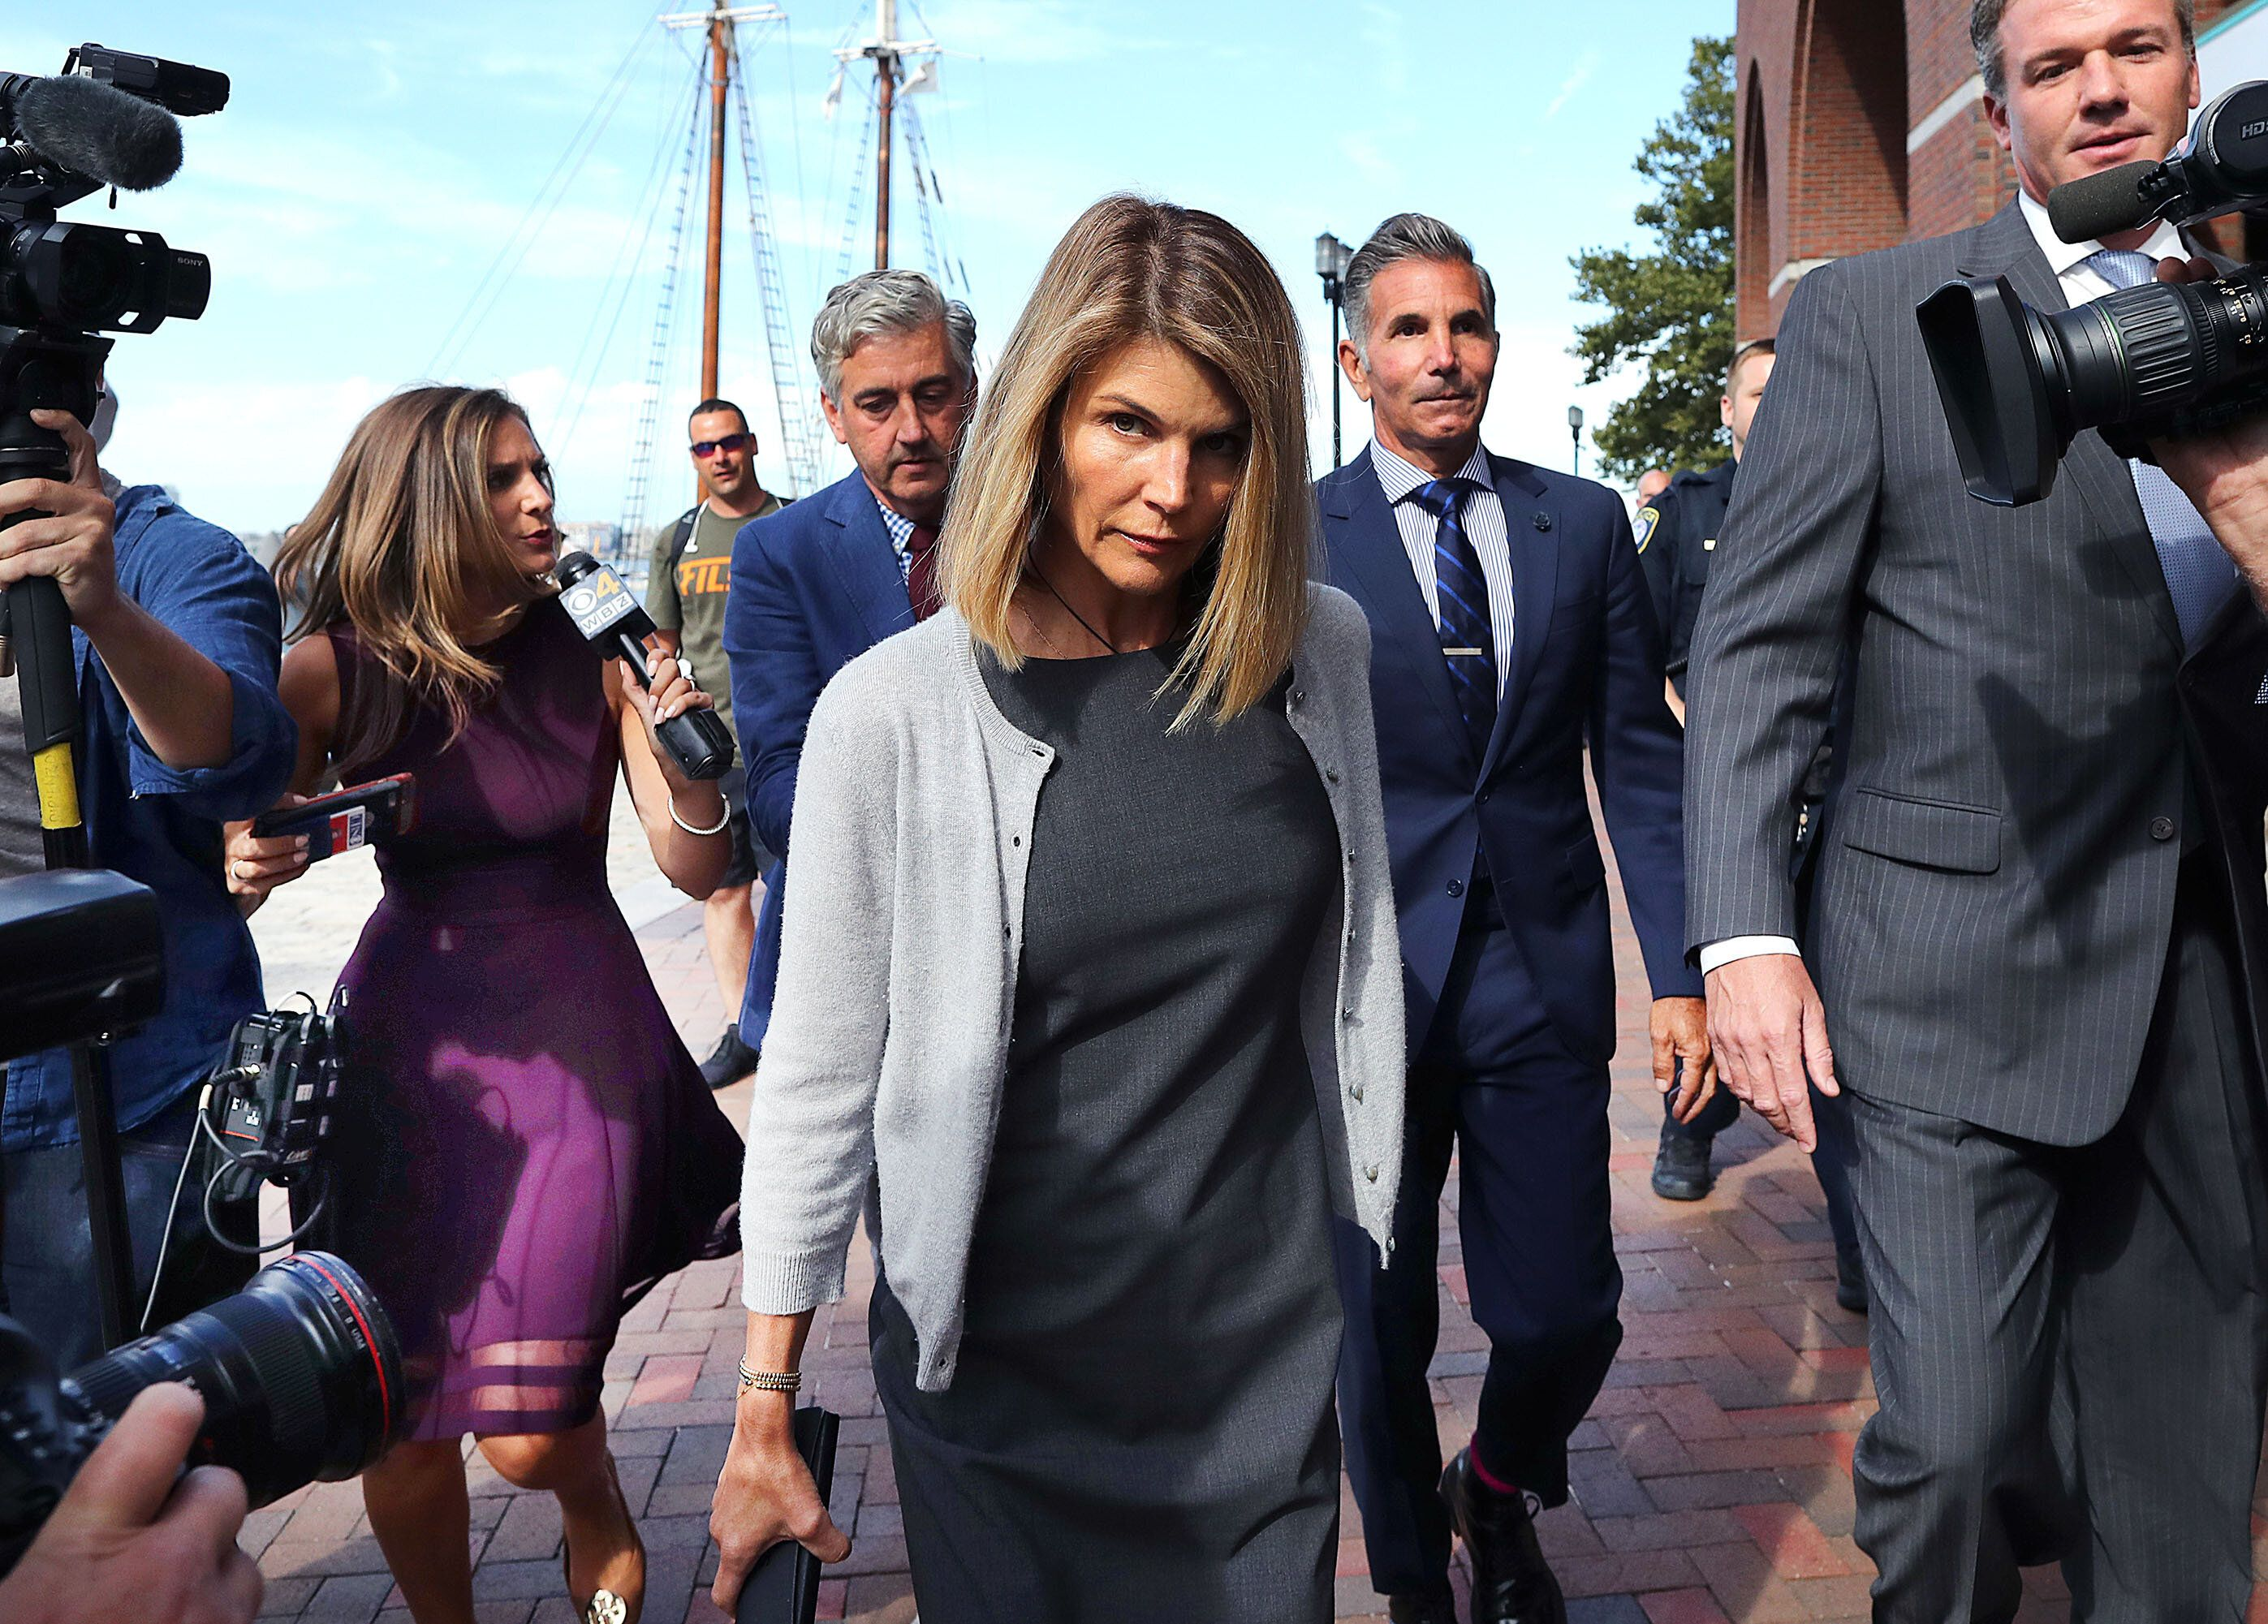 BOSTON, MA - AUGUST 27: Lori Loughlin, center, and her husband Mossimo Giannulli, behind her at right, leave the John Joseph